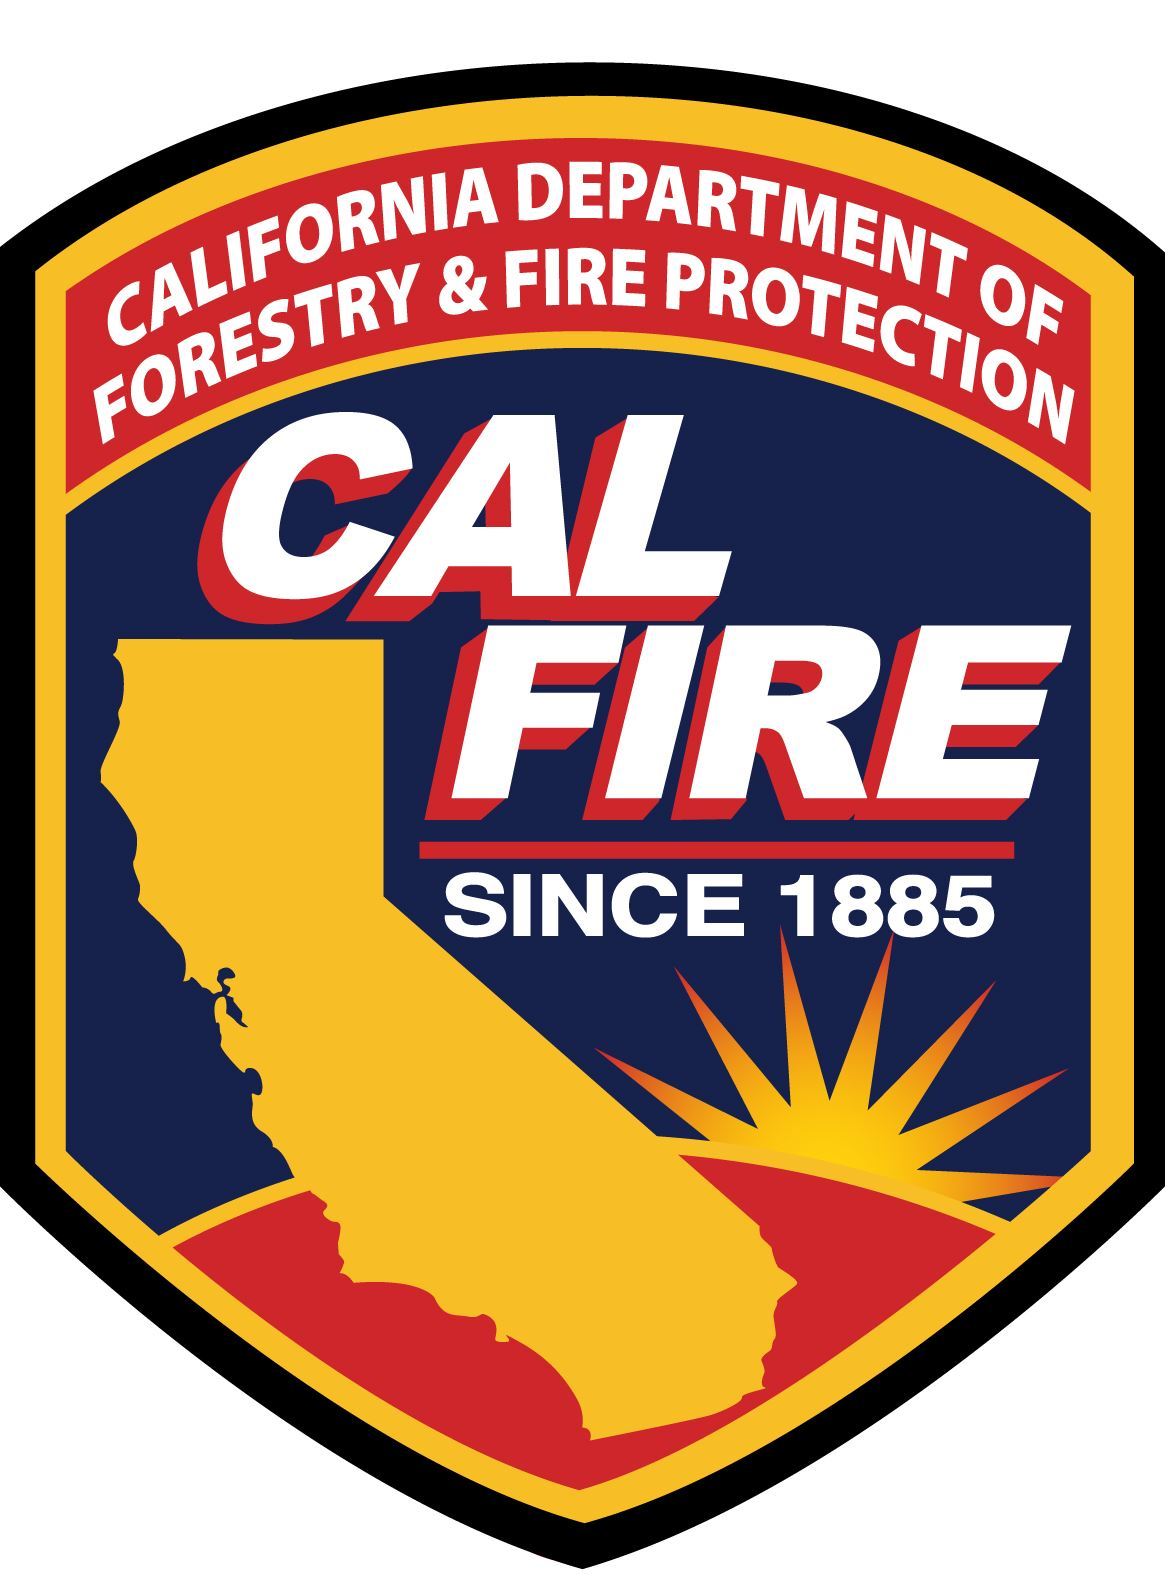 CAL_FIRE_logo_large